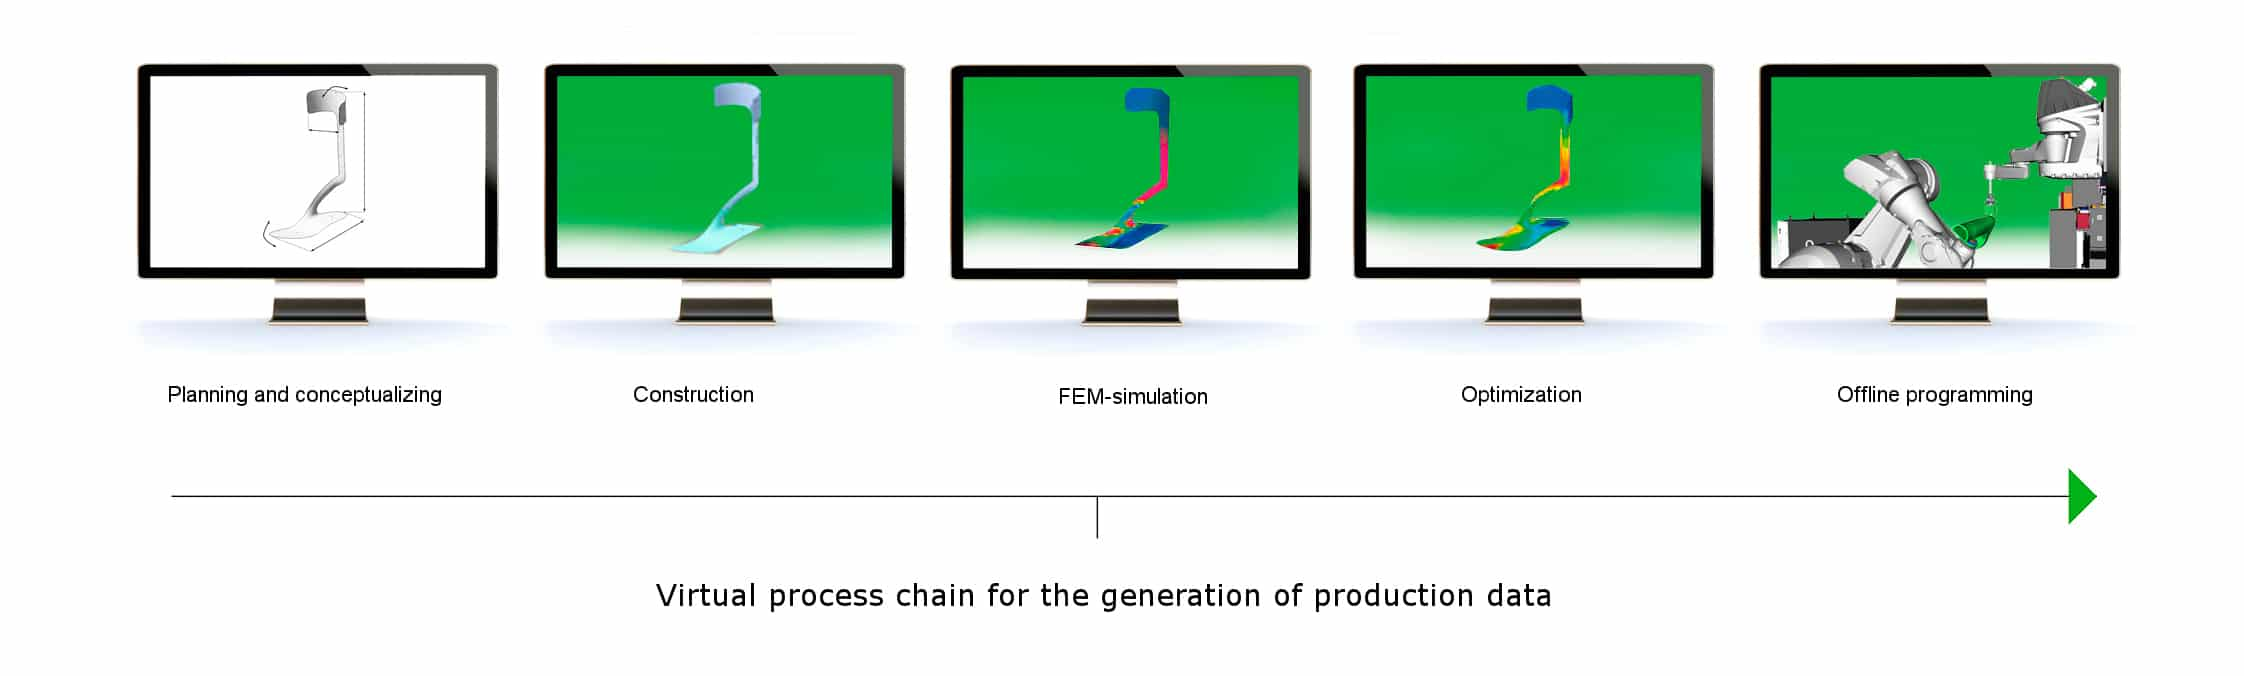 Virtual process chain for the generation of production data